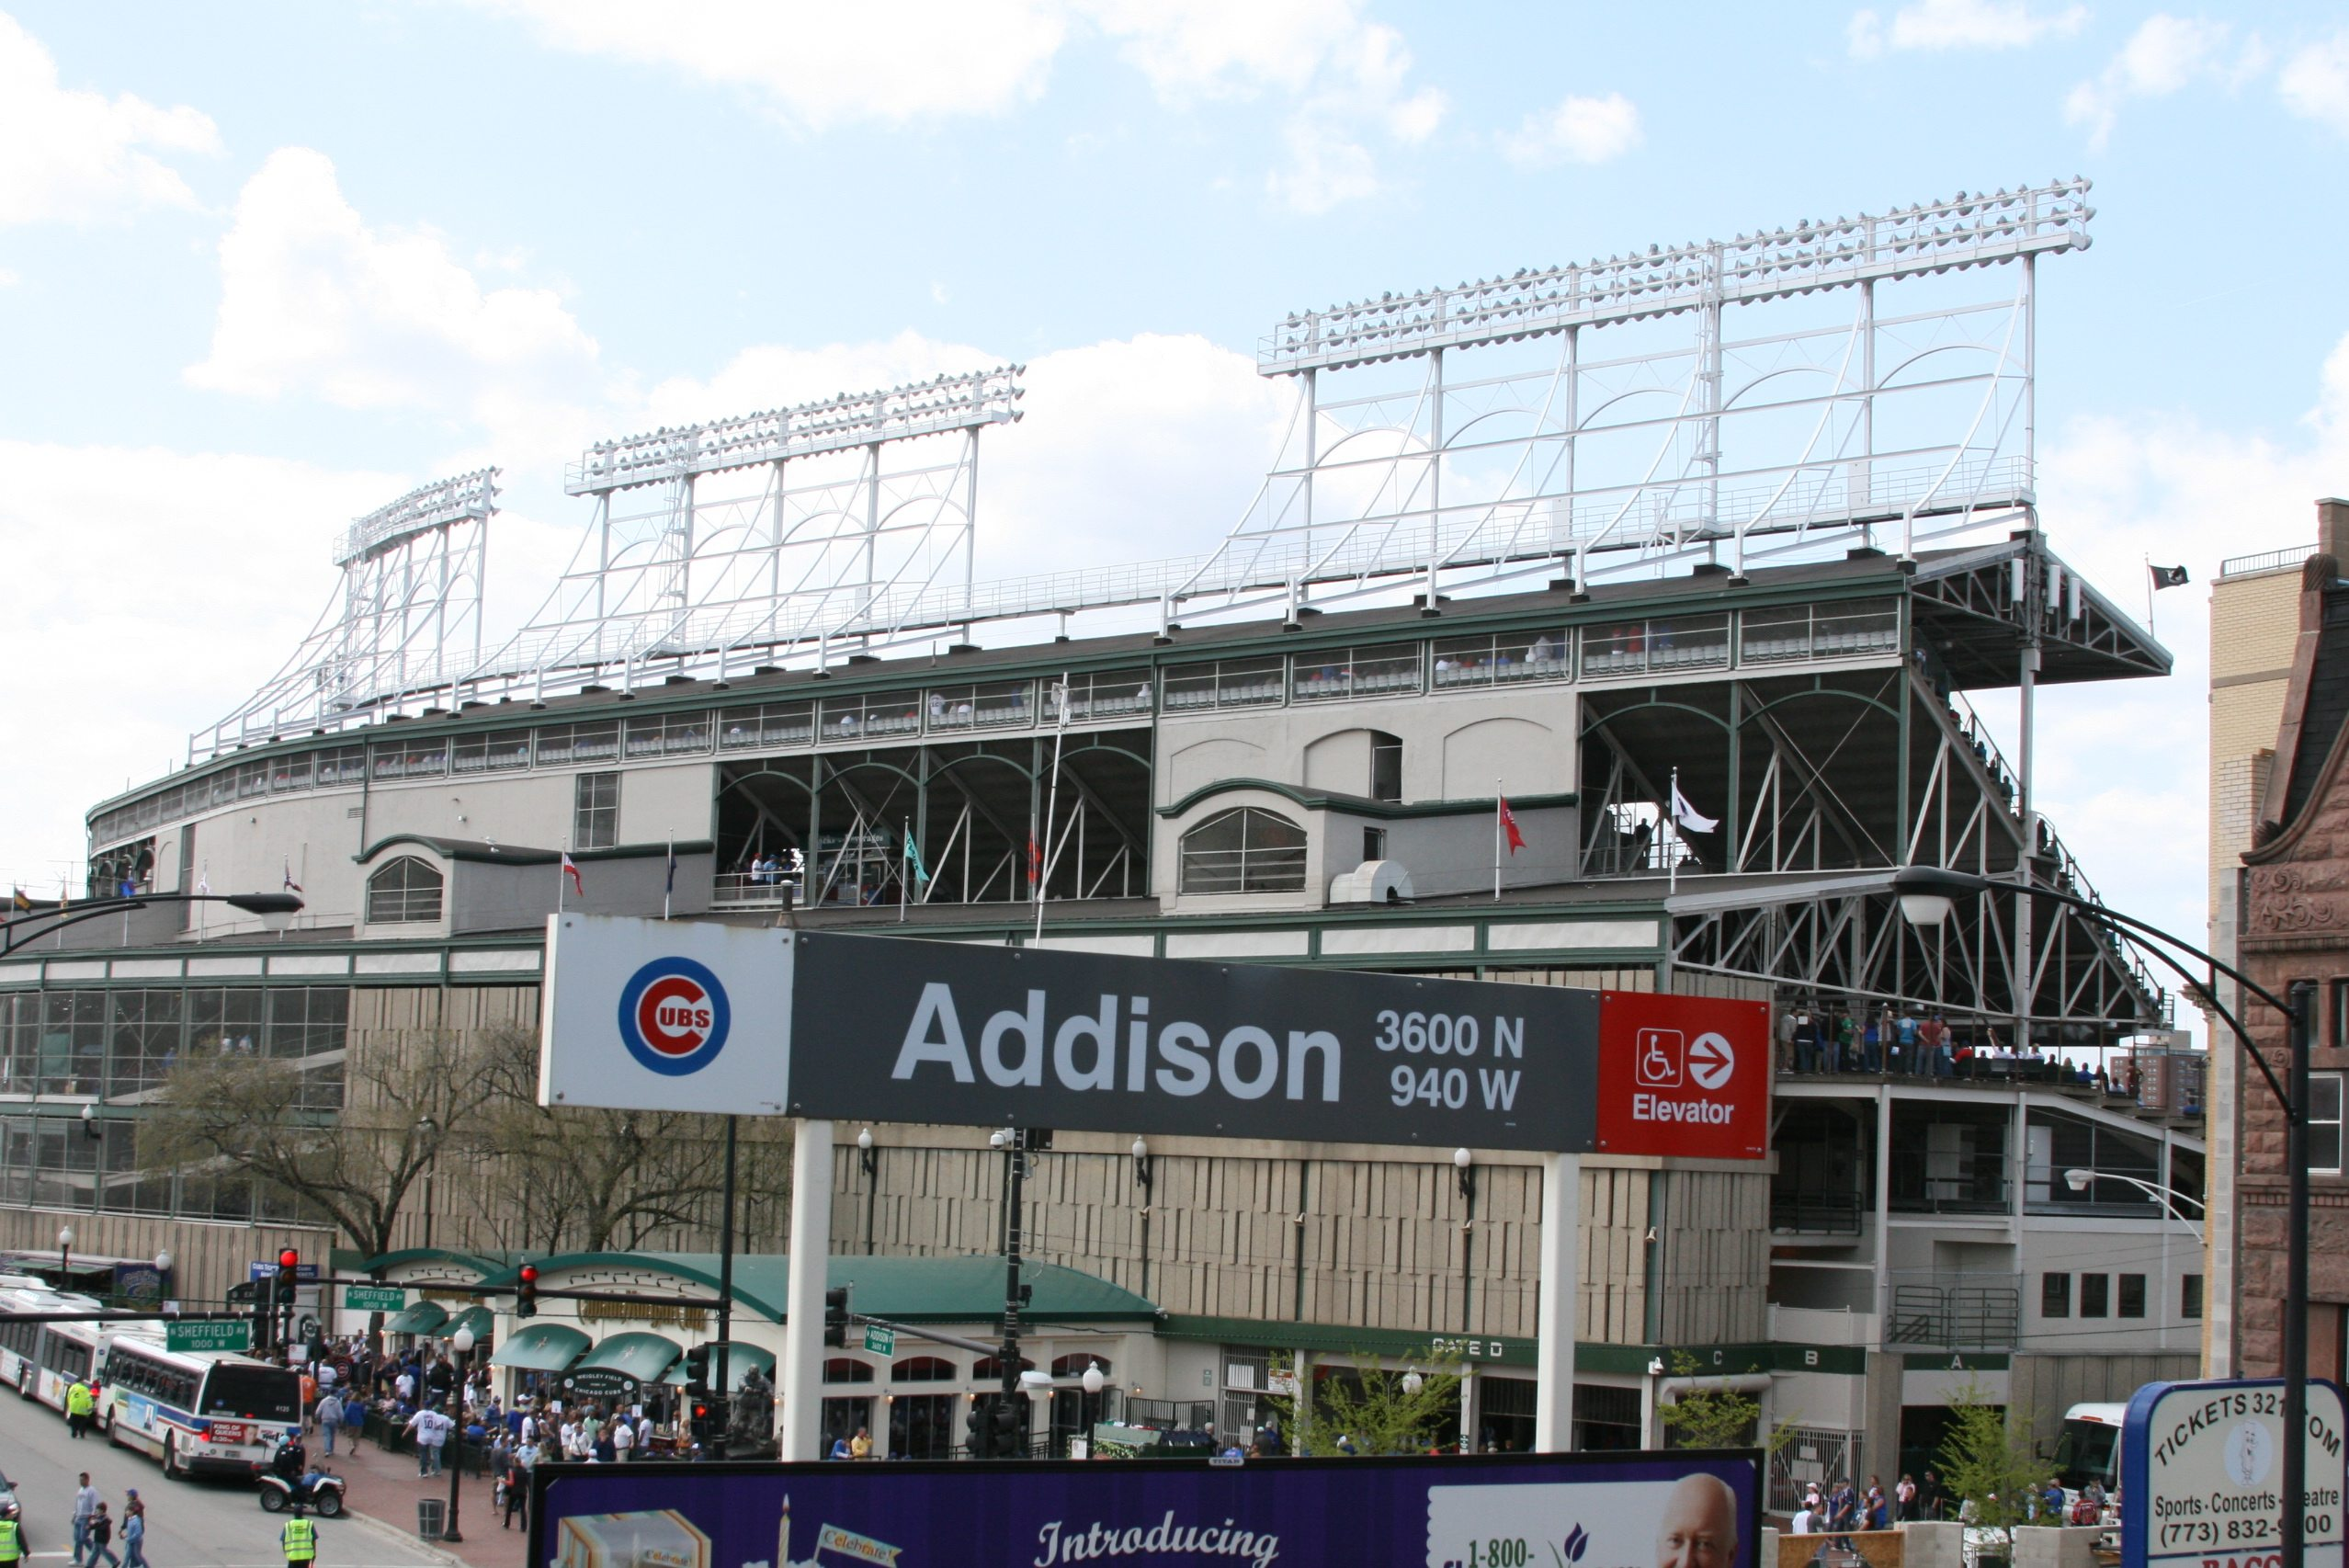 Wrigley hostel is conveniently located next to the Addison Redline Stop in Chicago.